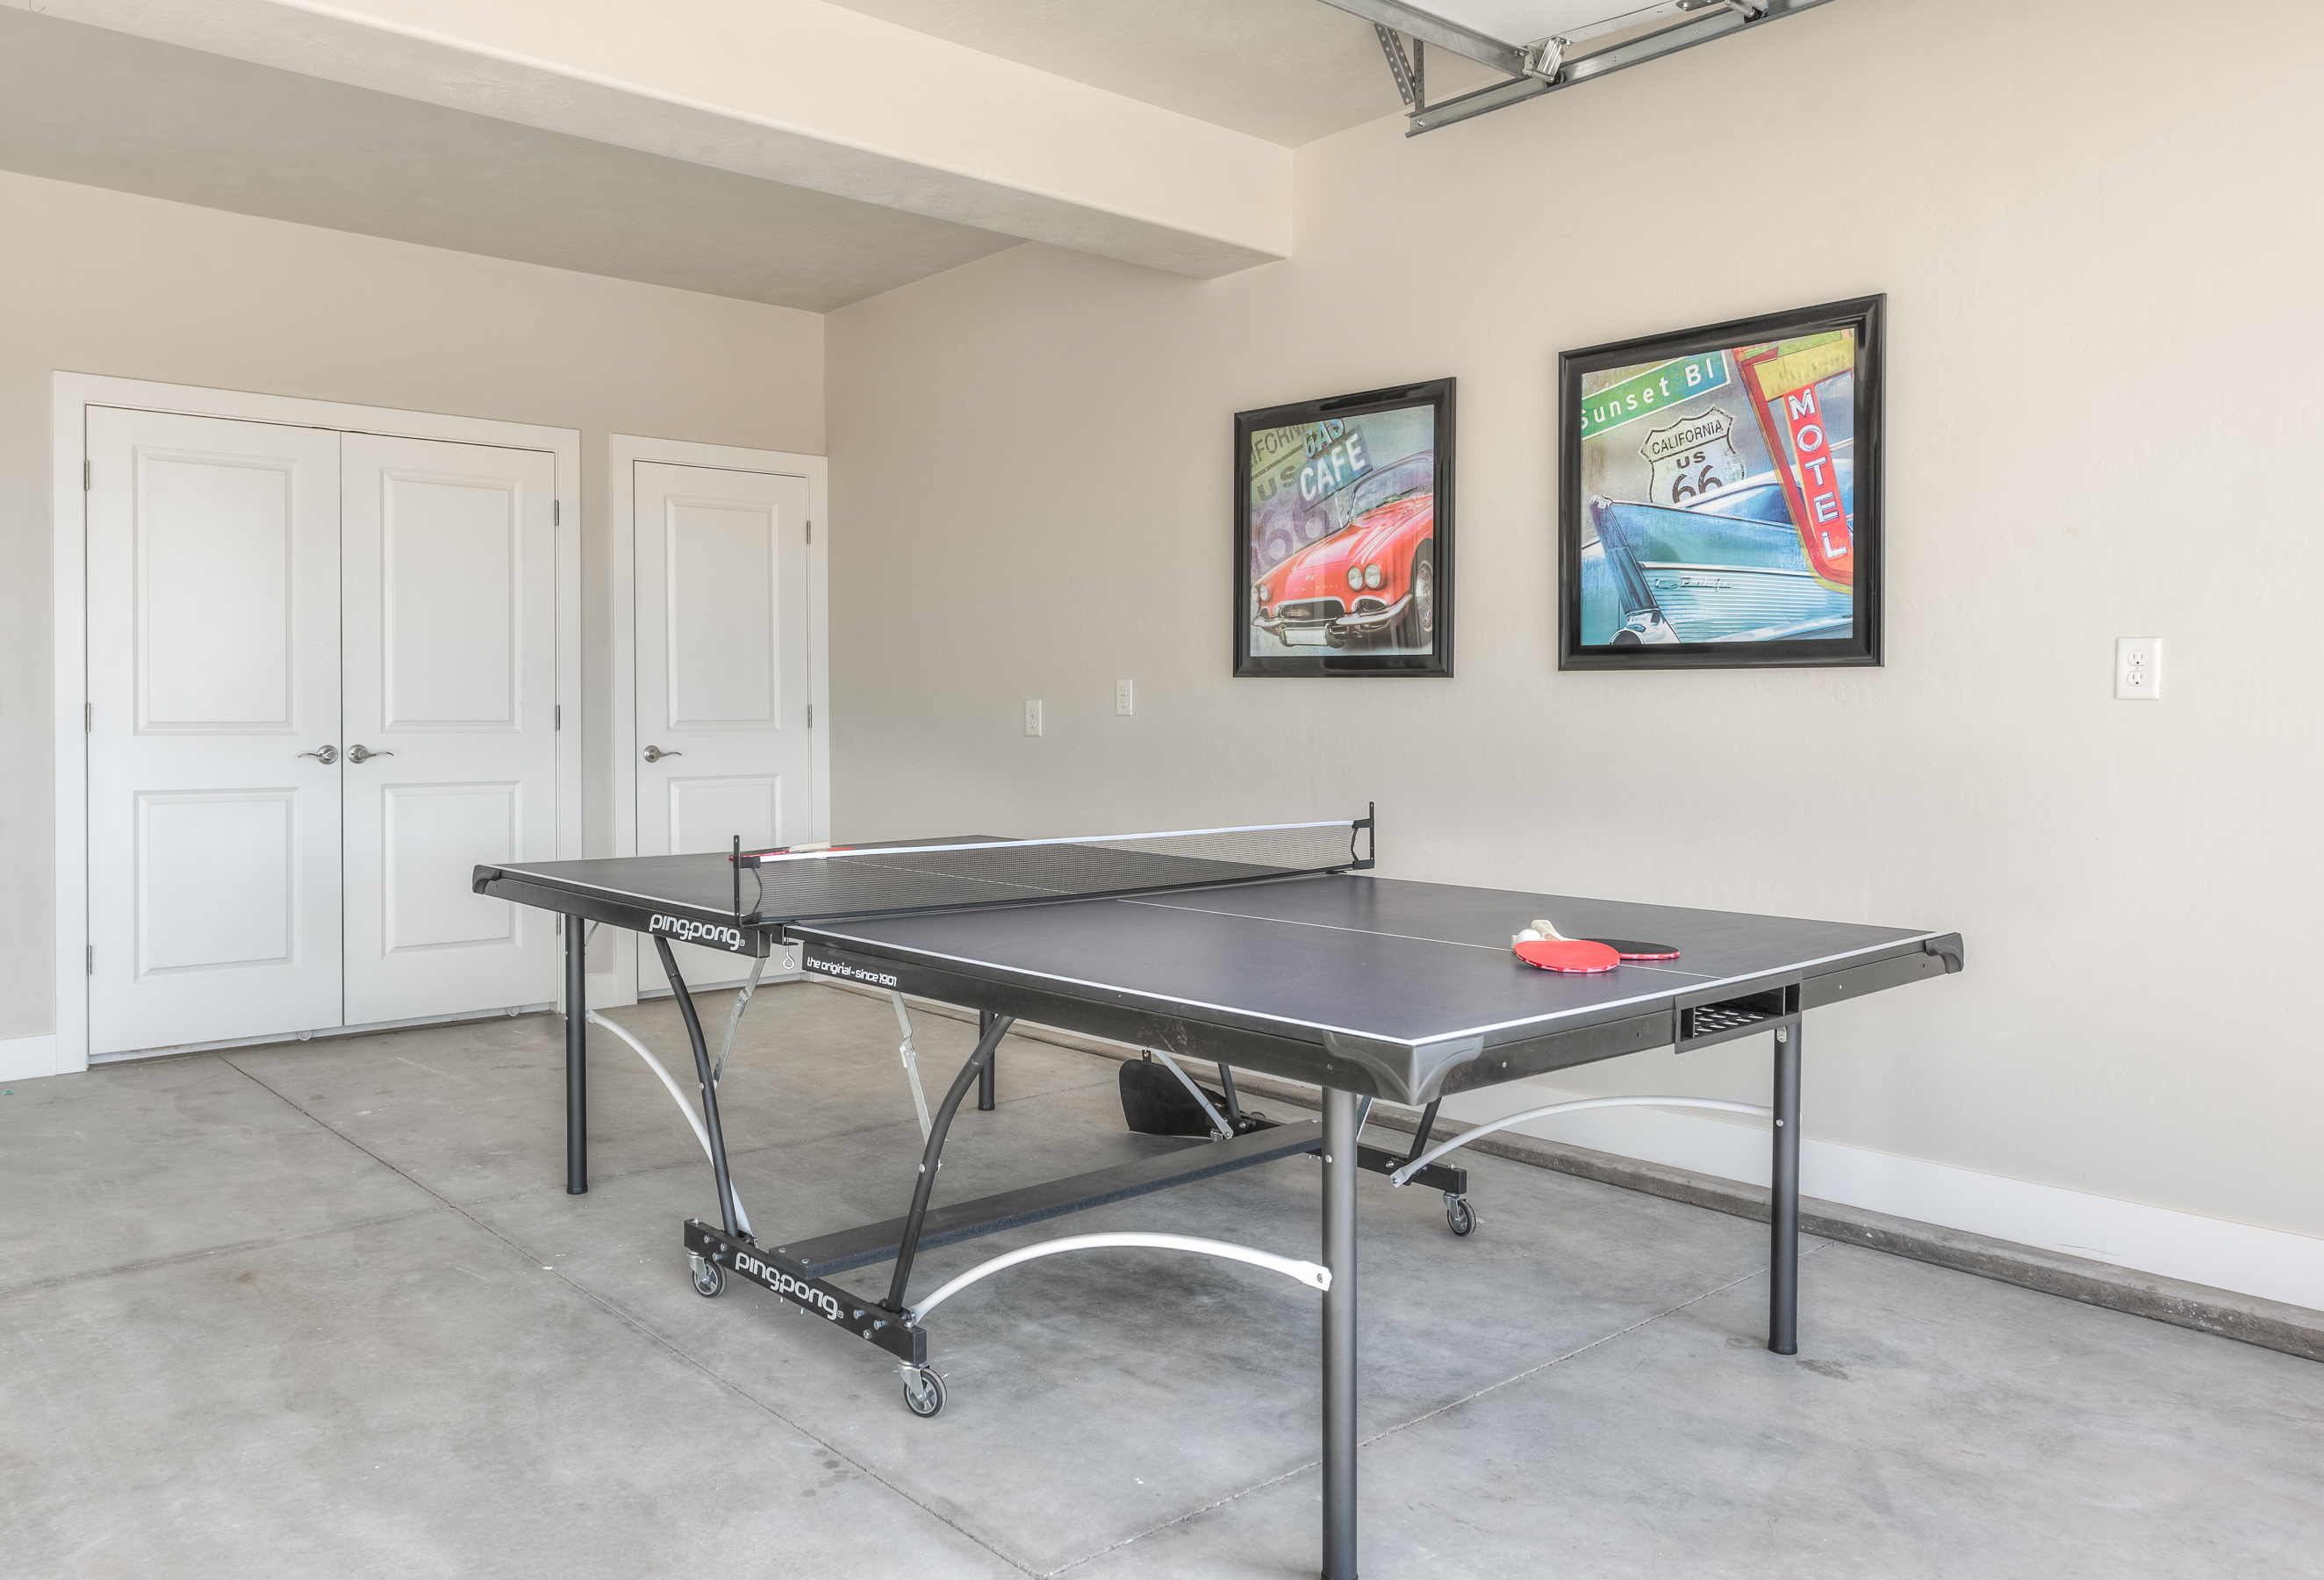 Ping Pong | Family Reunion Activity | Utah Family Reunion Homes with Ping Pong Table - Utah's Best Vacation Rentals